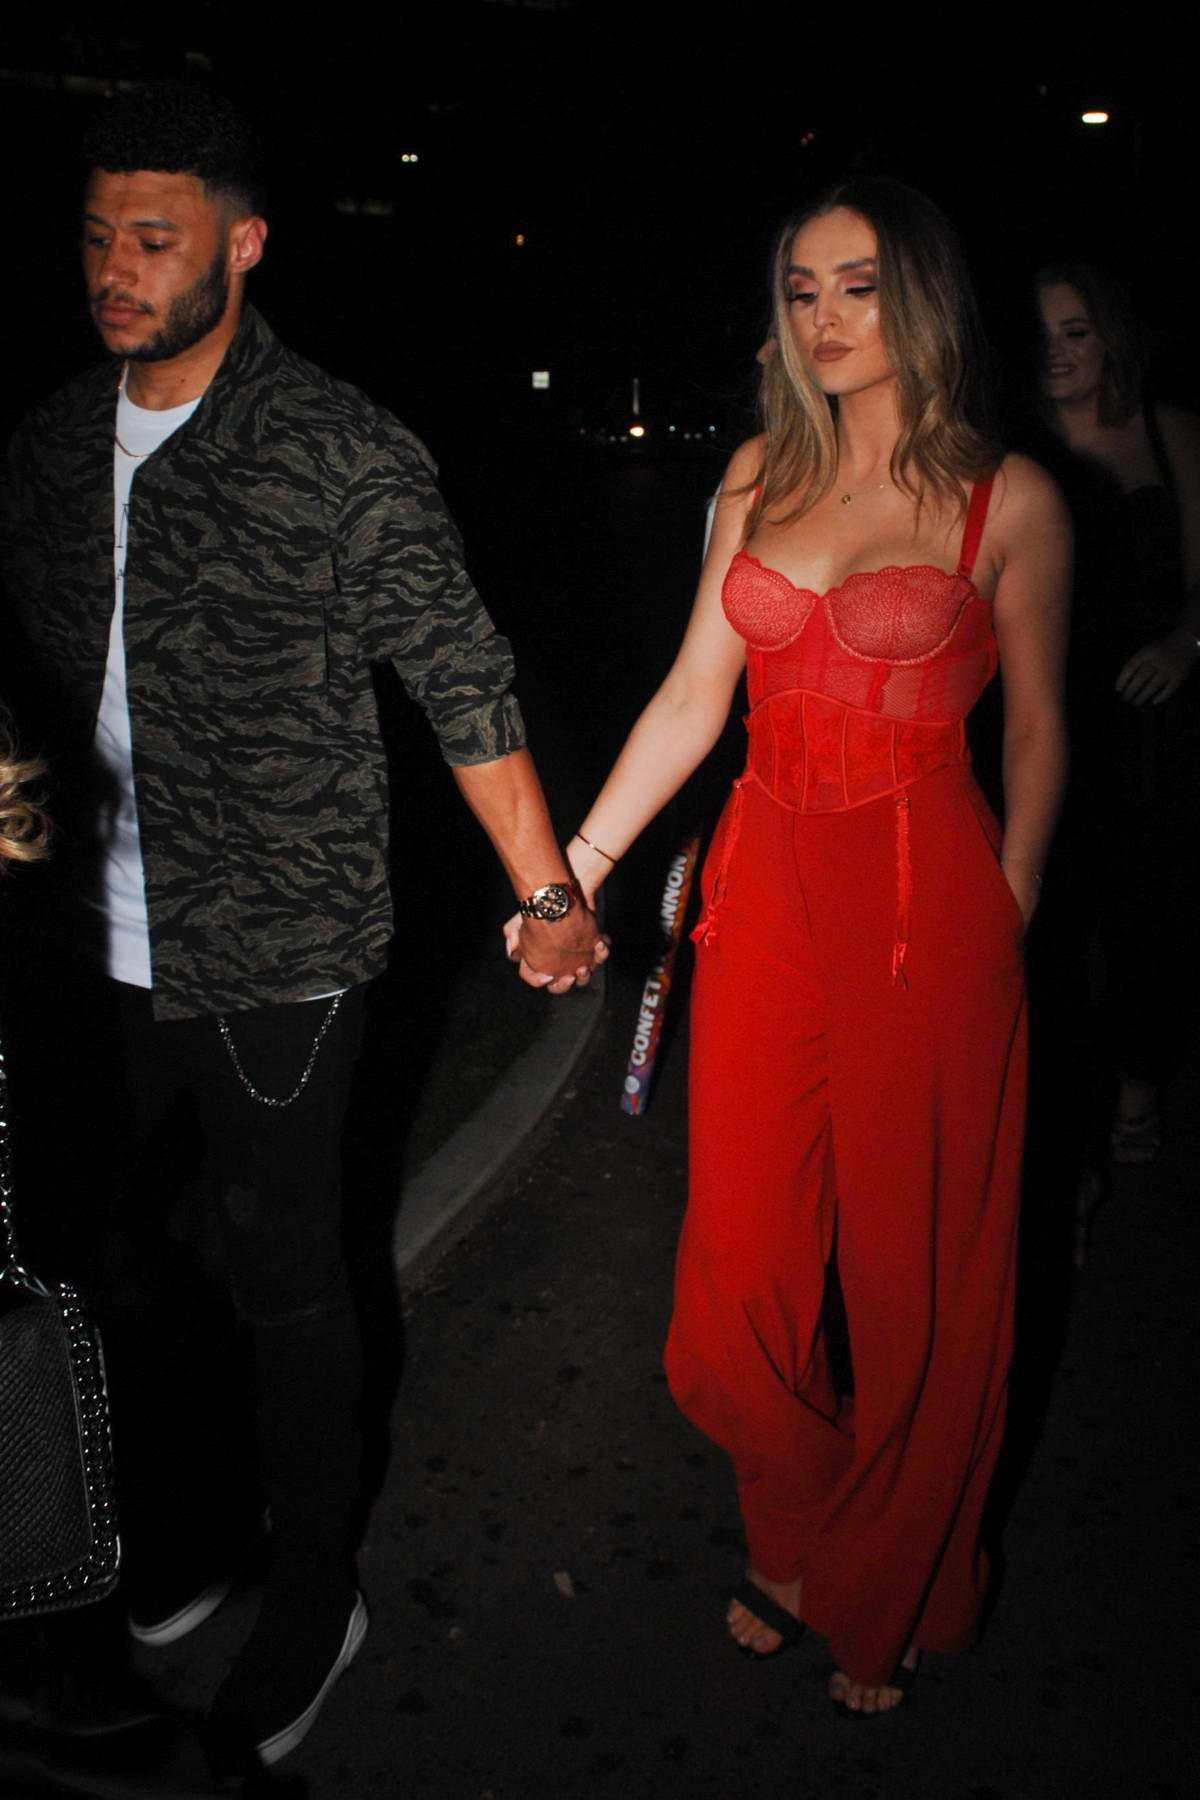 Perrie Edwards and her boyfriend Alex Oxlade-Chamberlain seen leaving Menagerie Restaurant & Bar in Manchester, UK